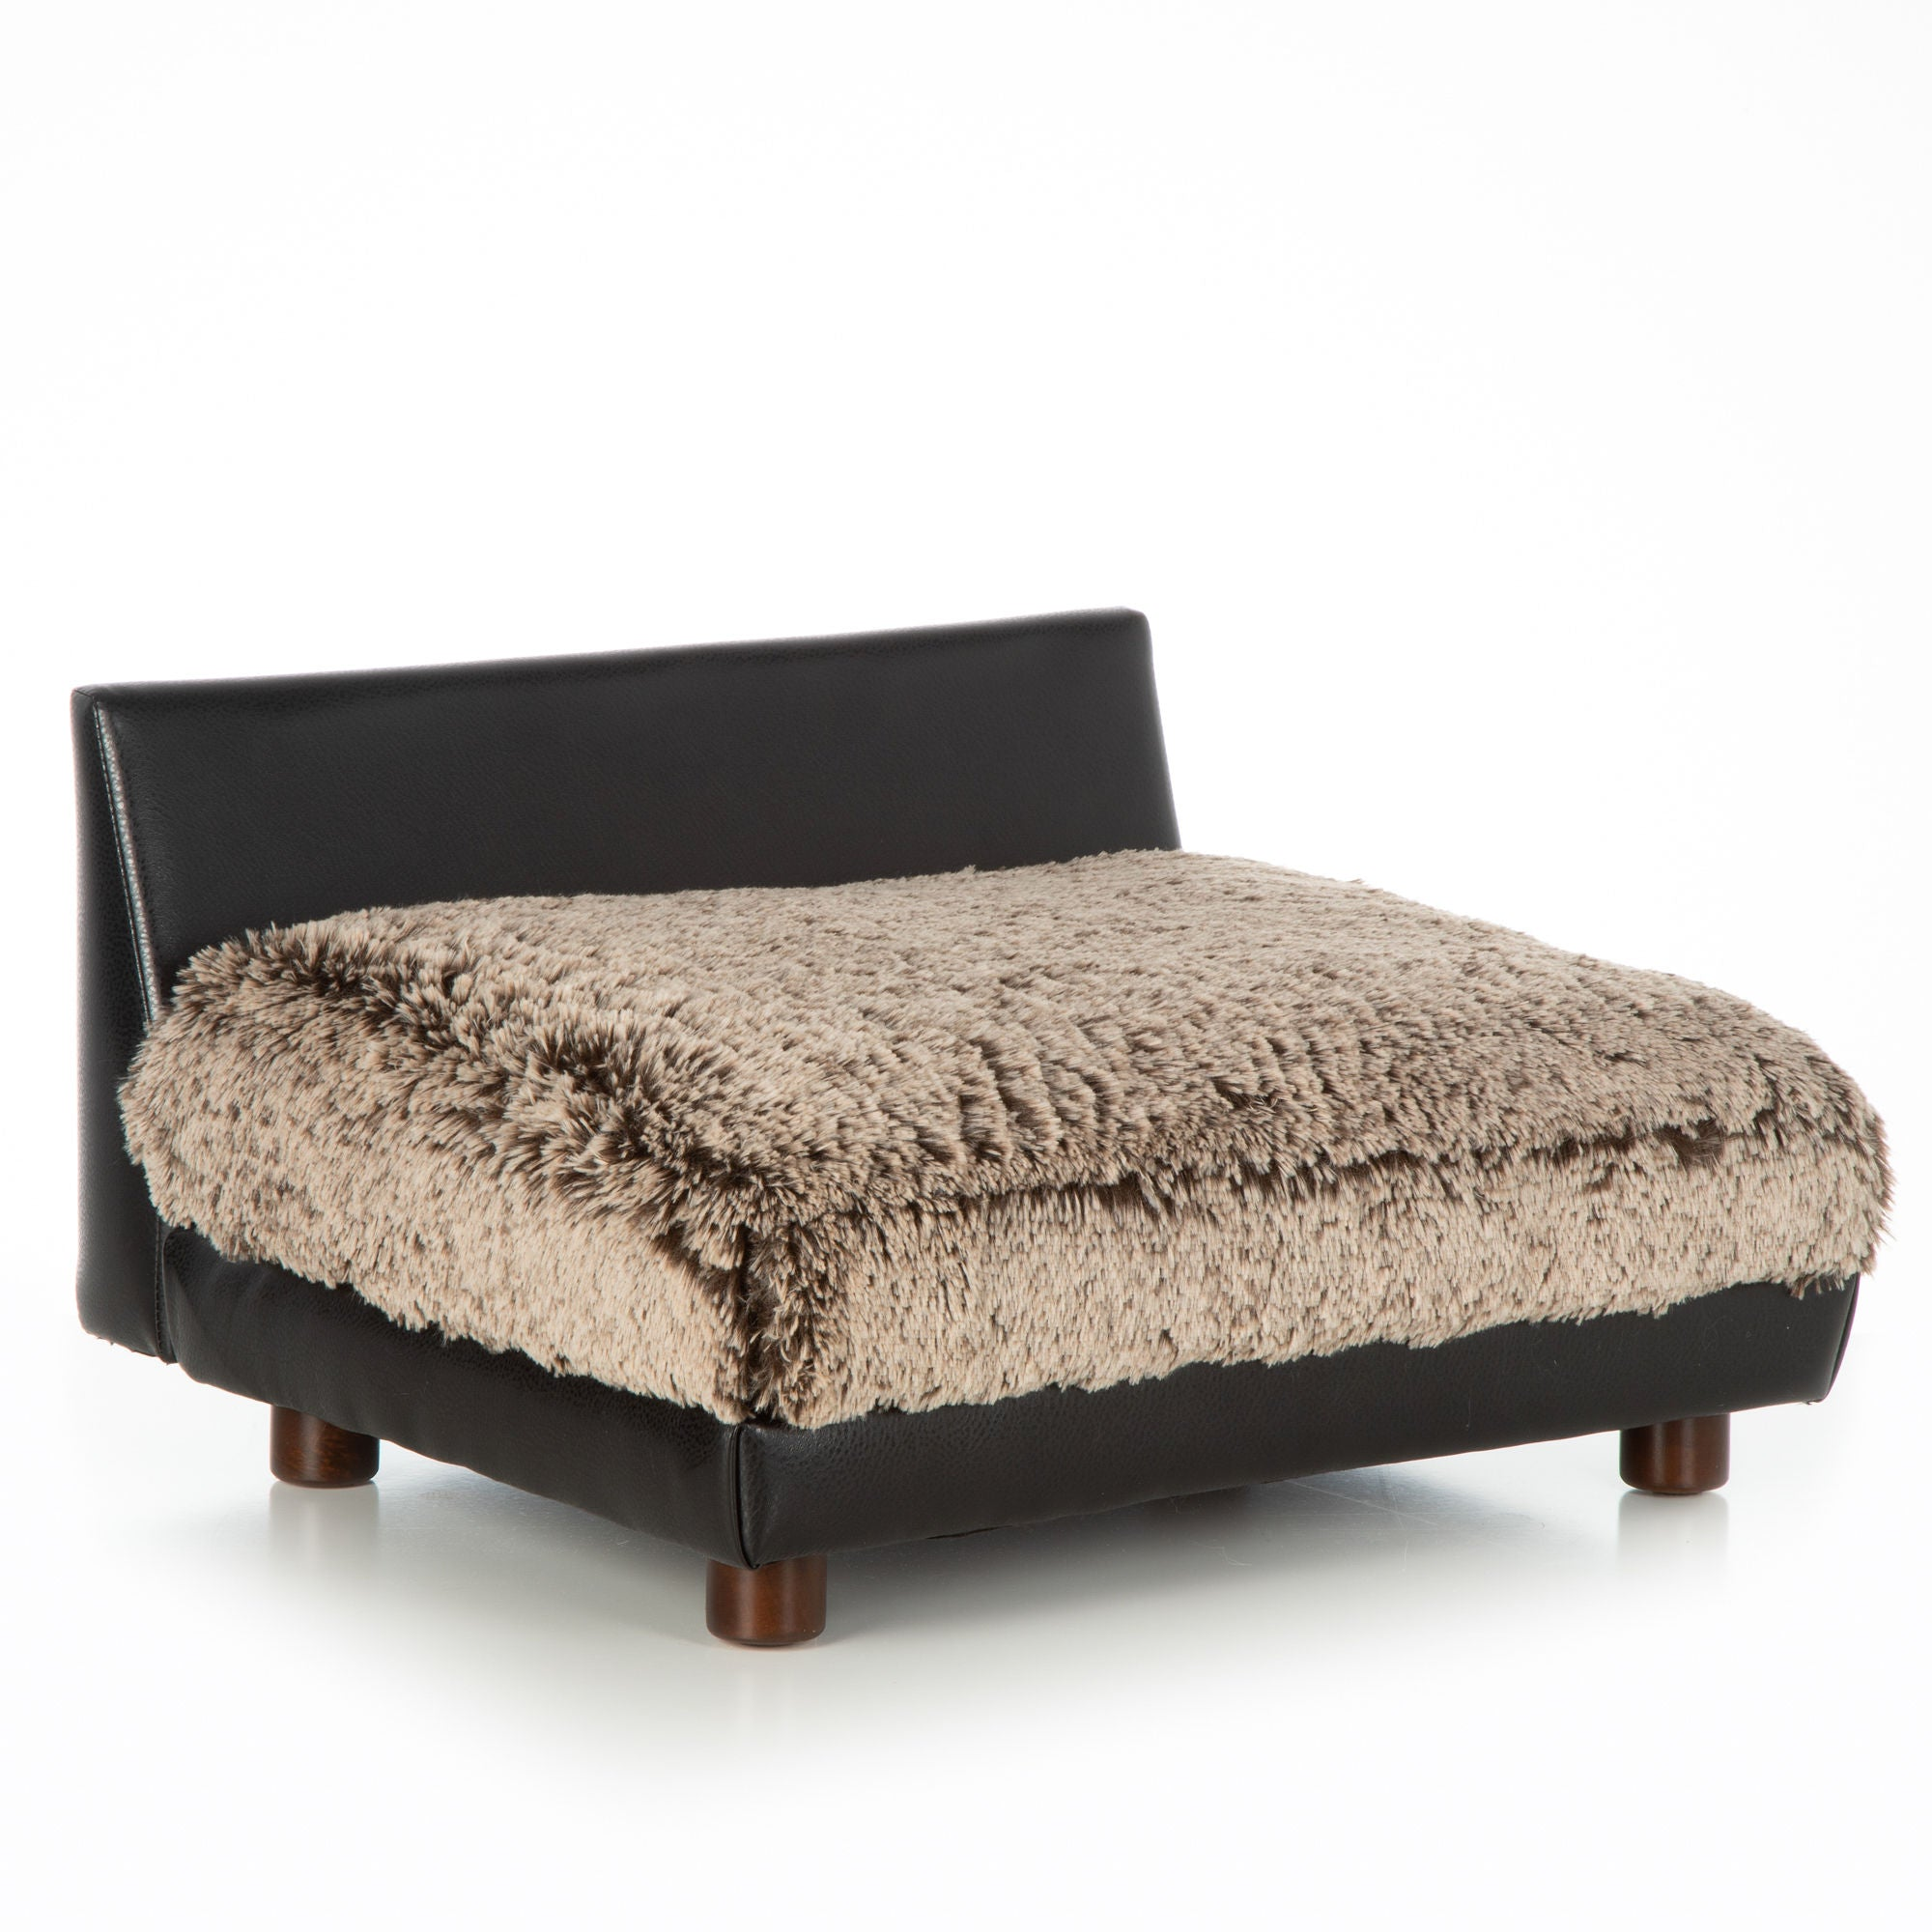 Dog Bed Black Orthopedic Brown Beige Shaggy Cushion by Club Nine Pets